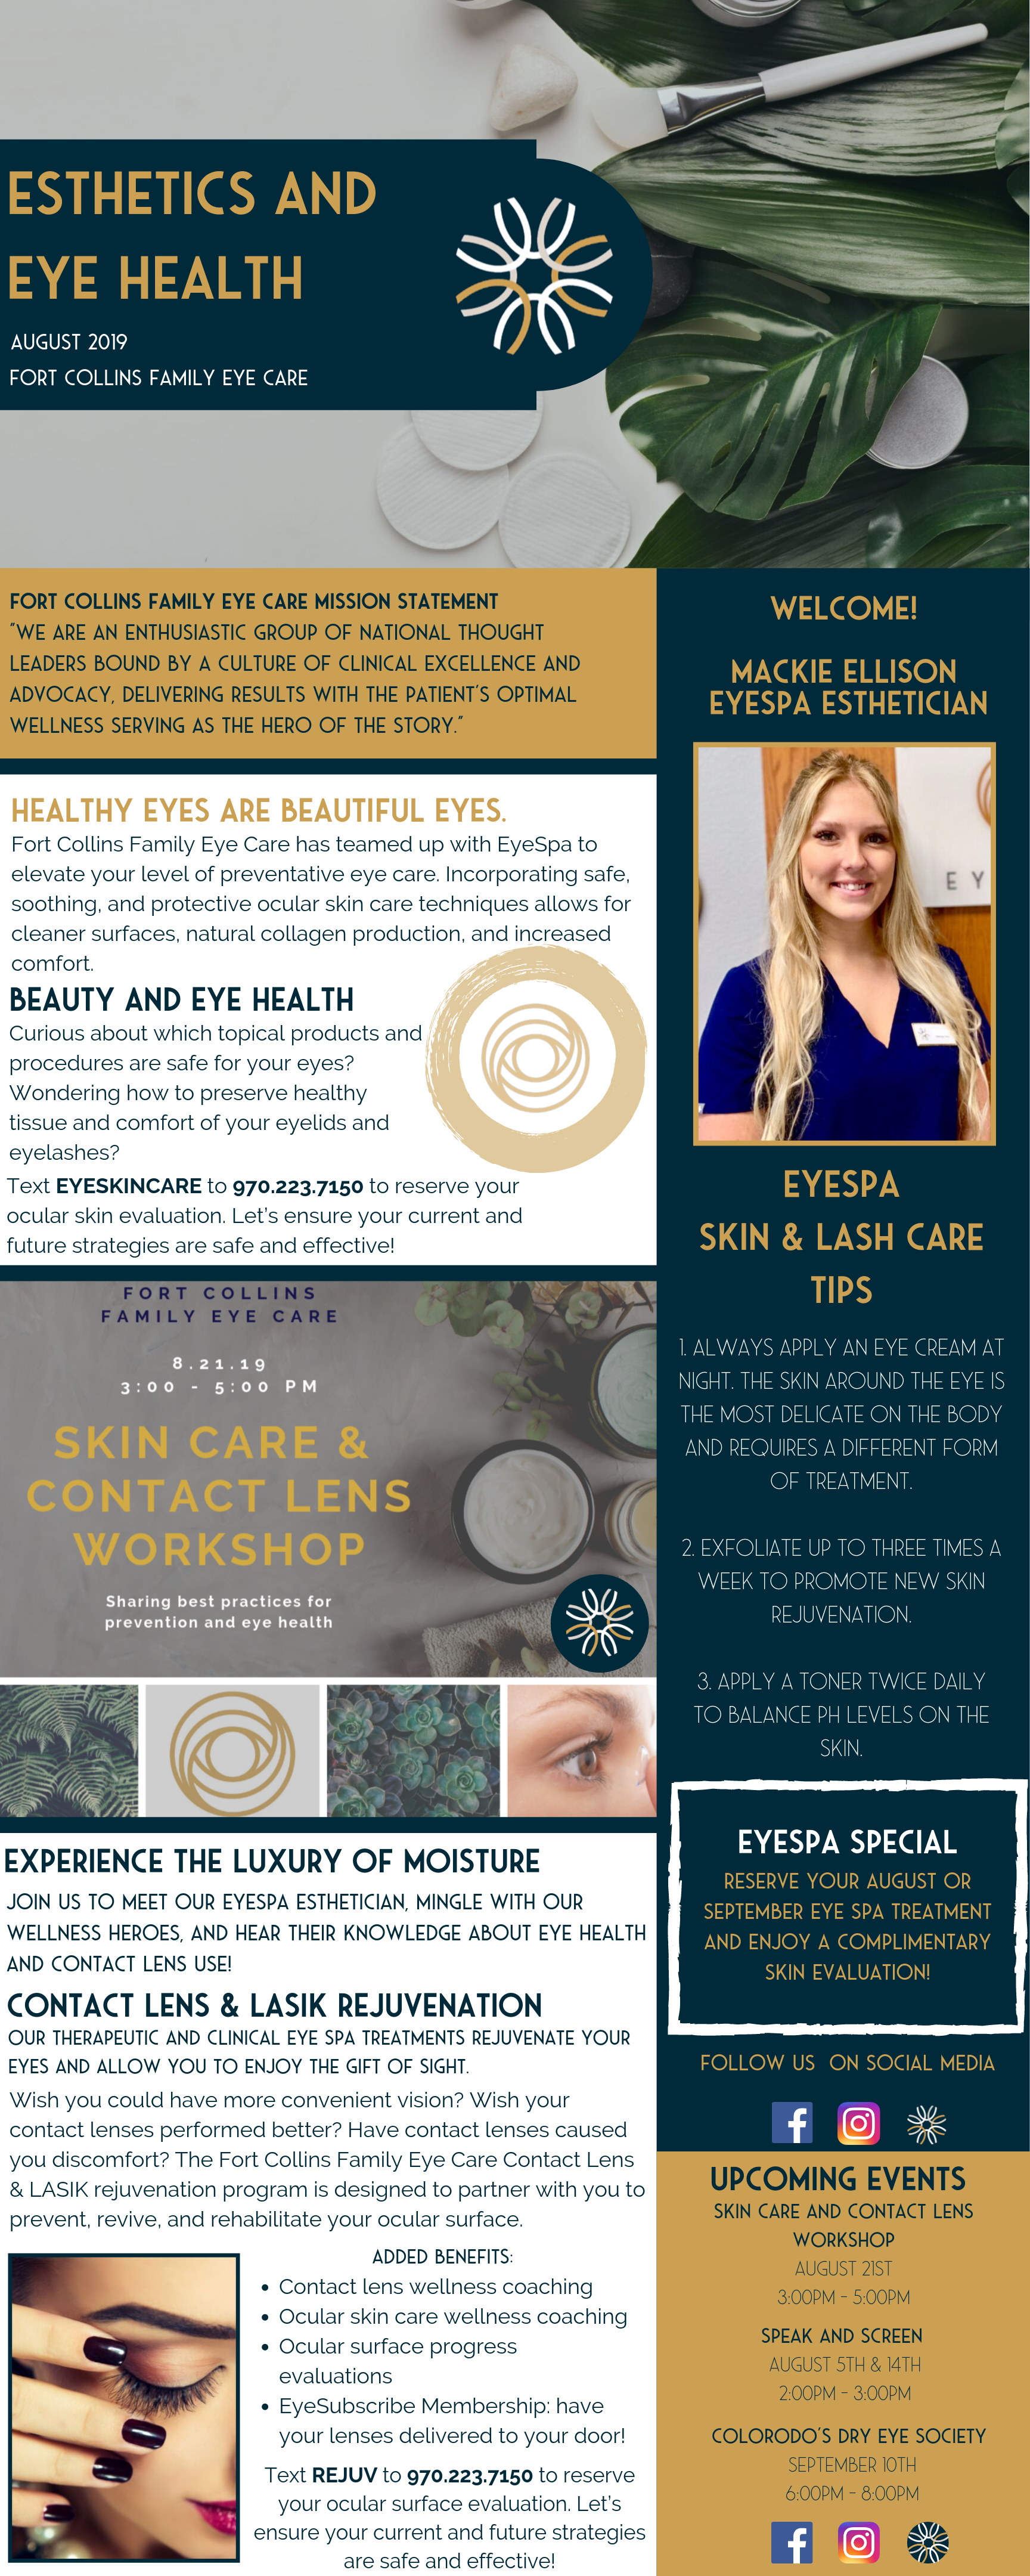 August Aesthetics & Eye Health-8.png